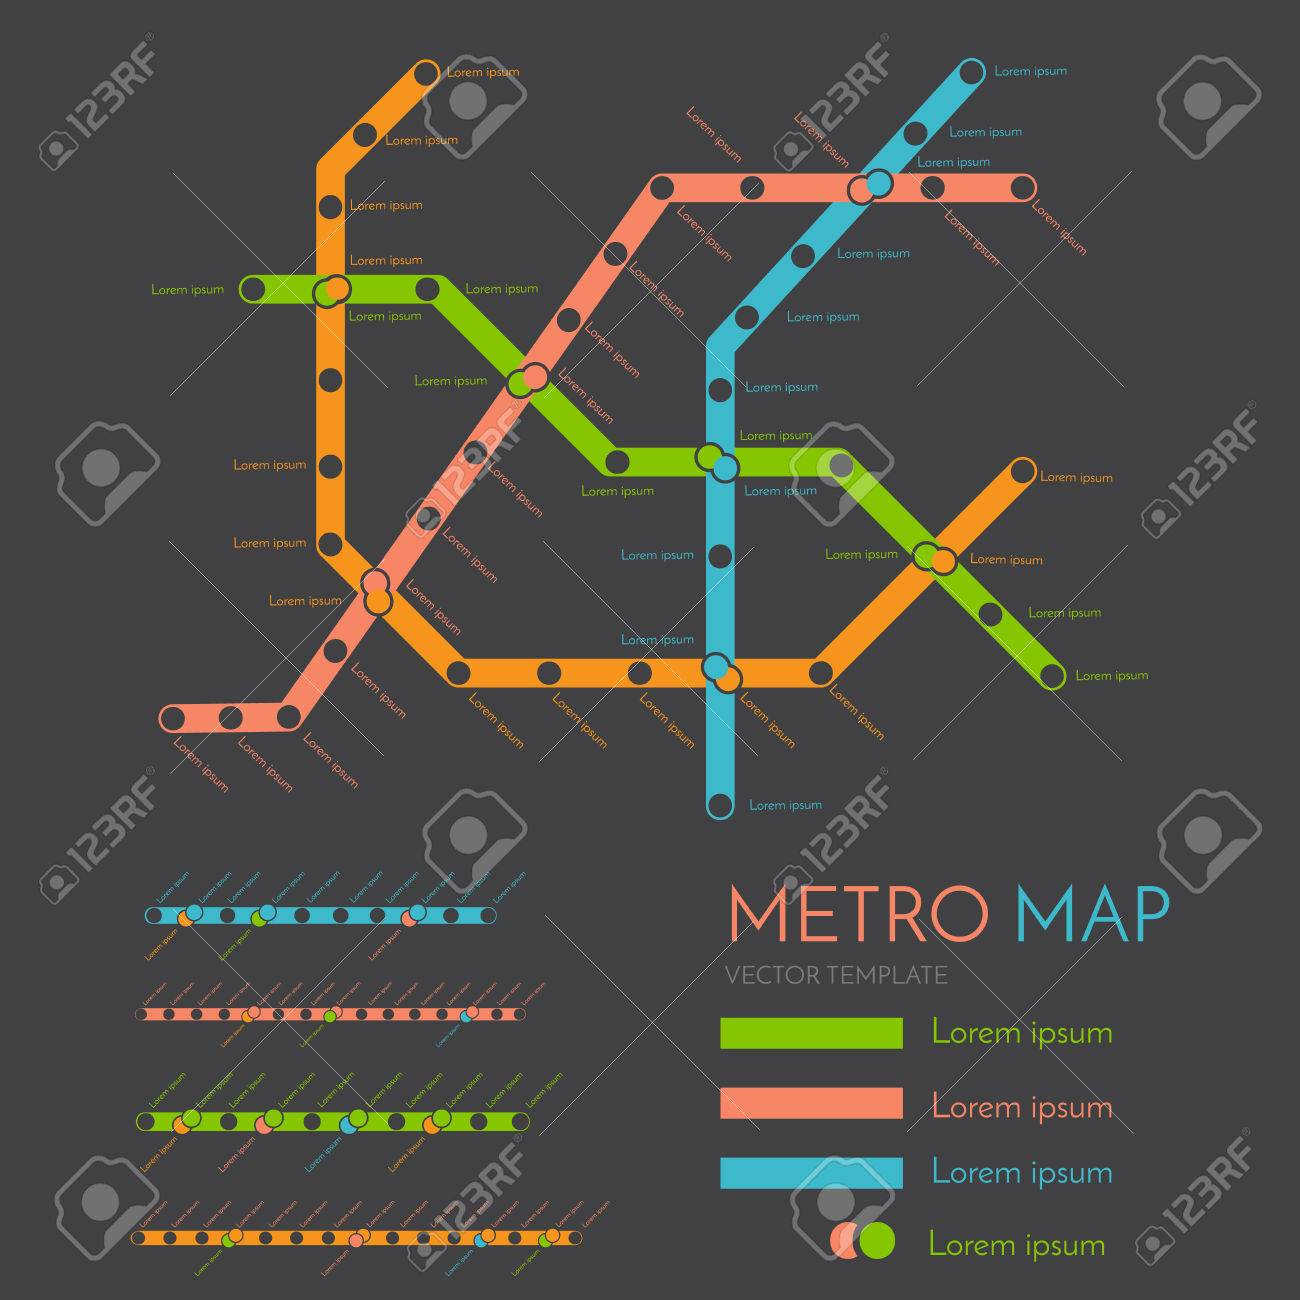 Creative Subway Map.Metro Or Subway Map Design Template City Transportation Scheme